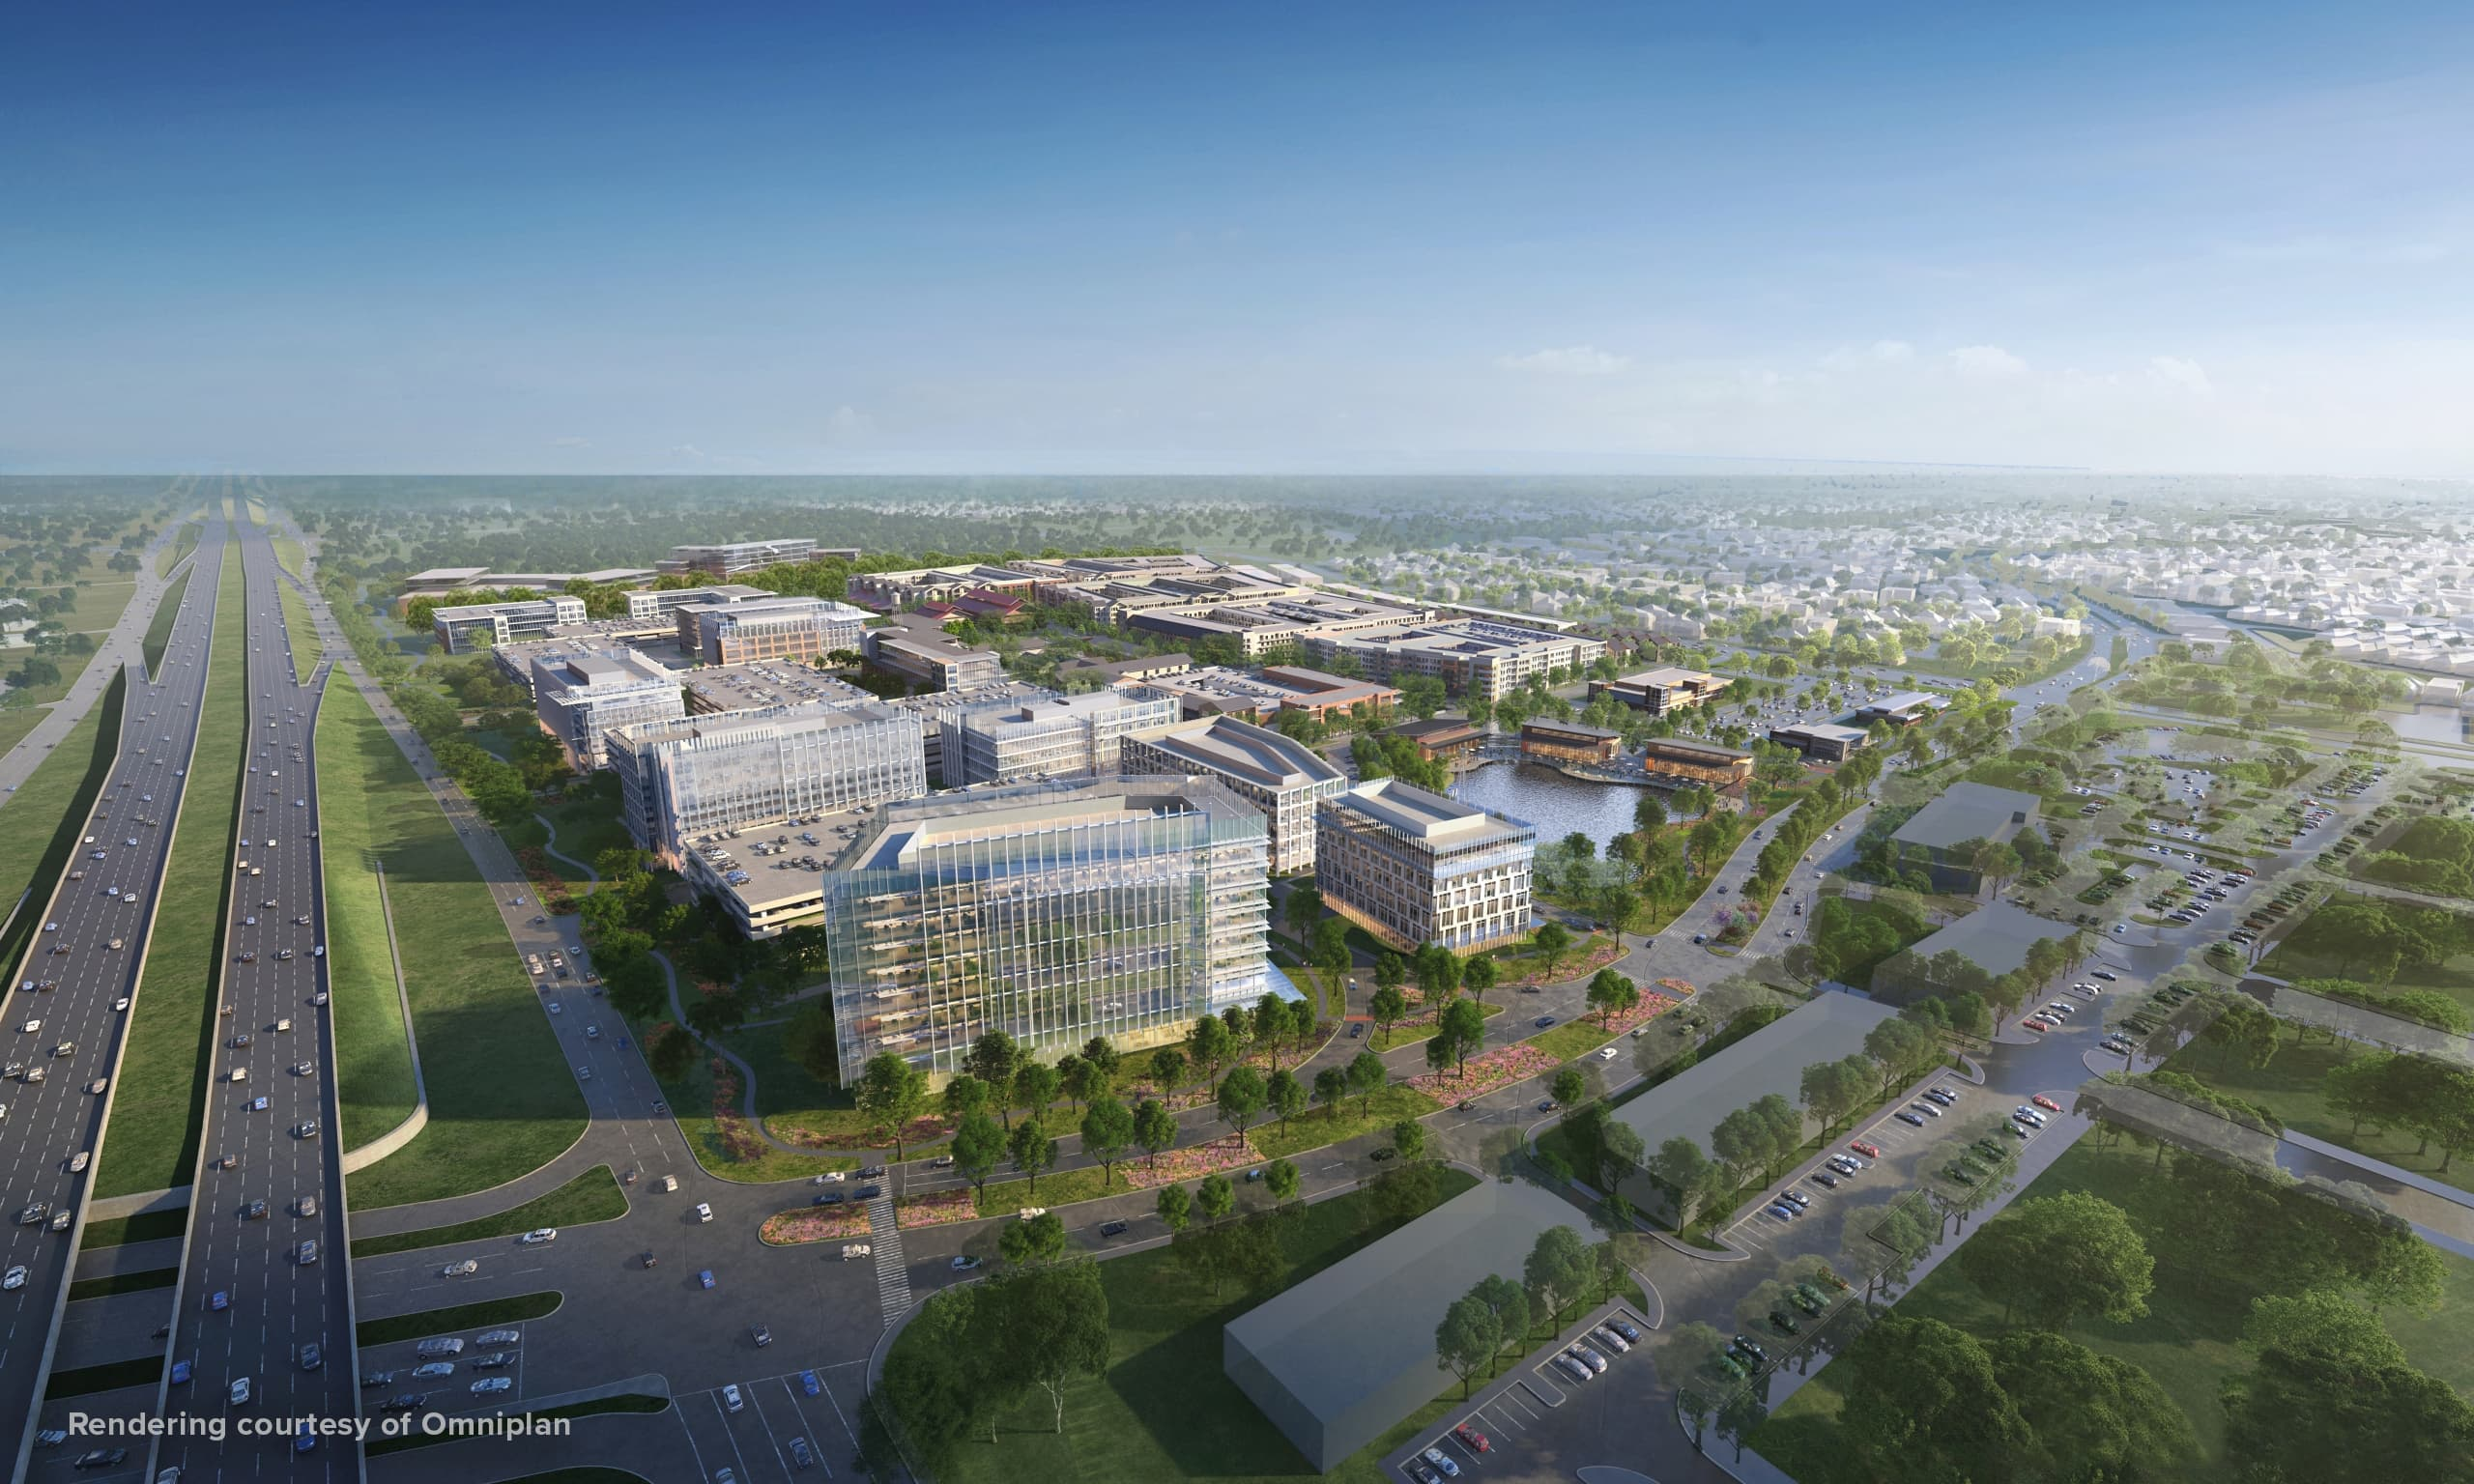 Aerial view of The Farm mixed use development in Allen, Texas